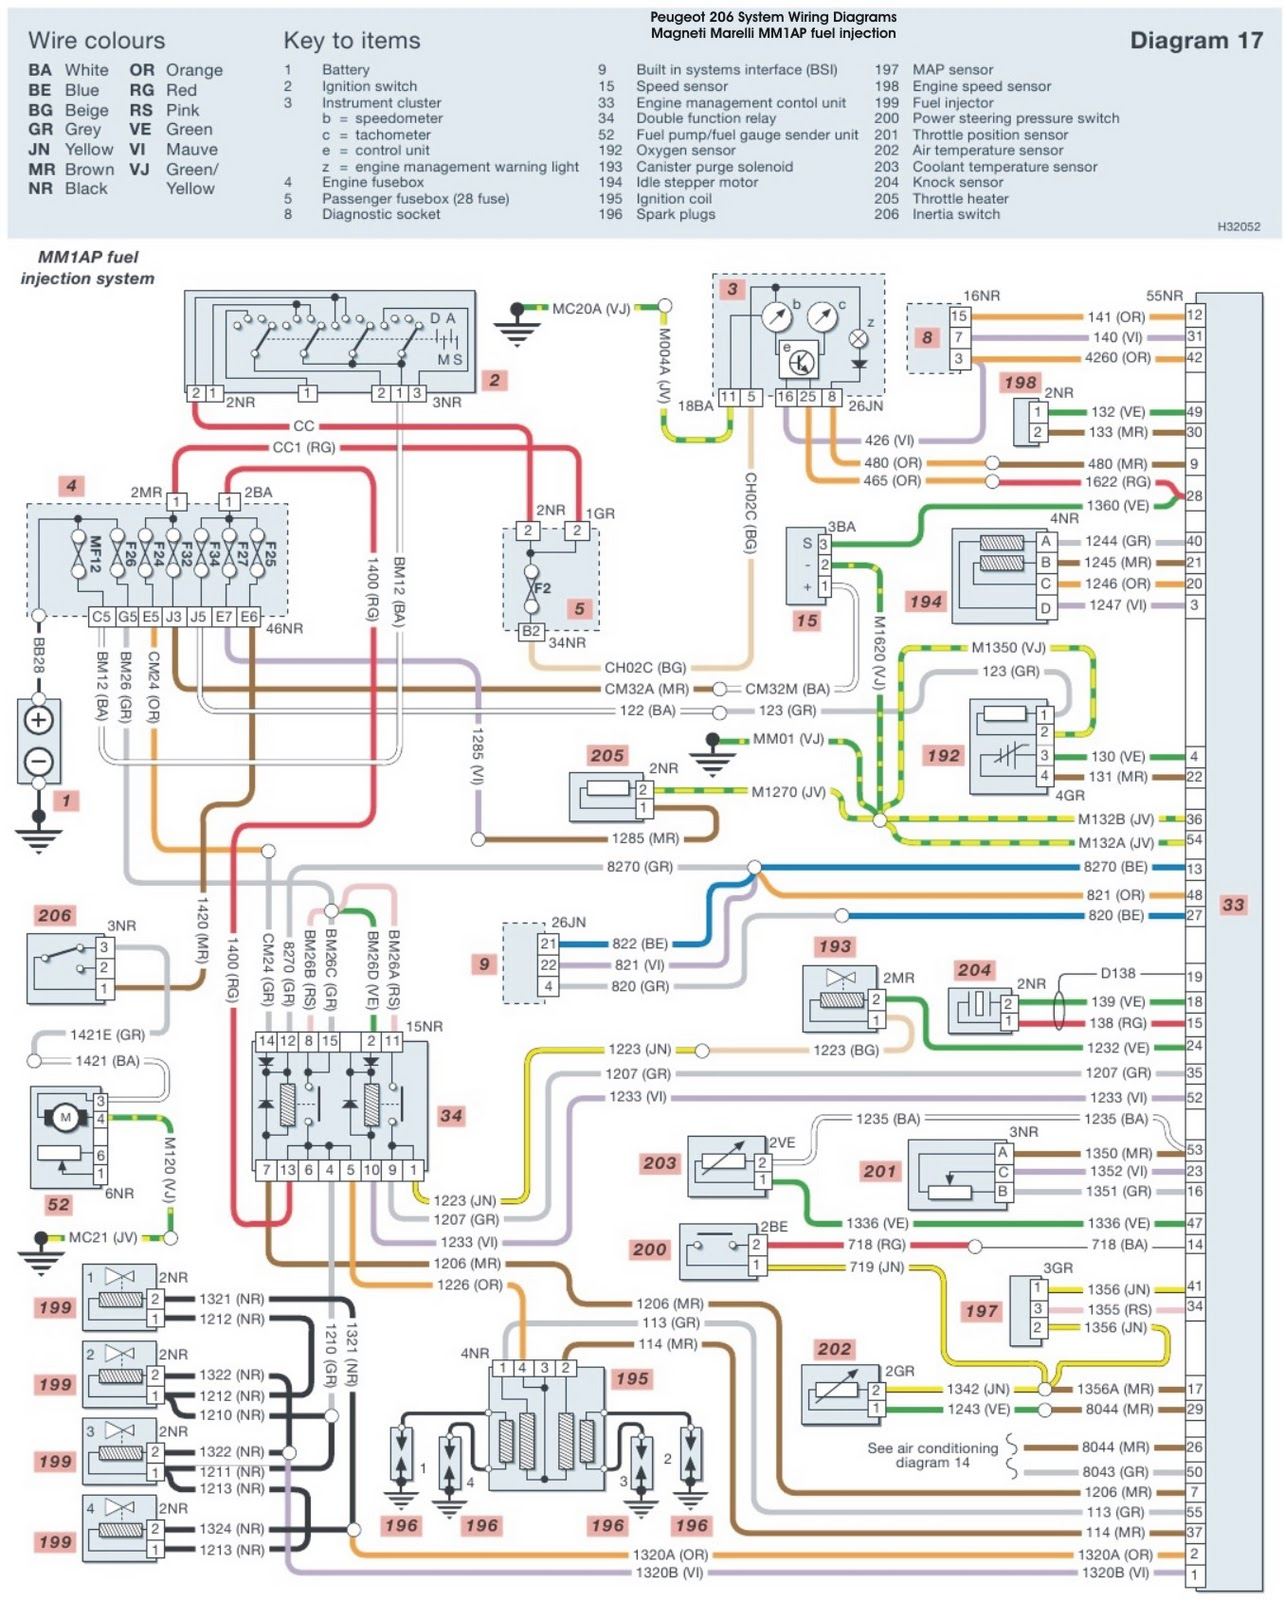 Wondrous Peugeot Engine Wiring Diagram Diagram Data Schema Wiring 101 Breceaxxcnl